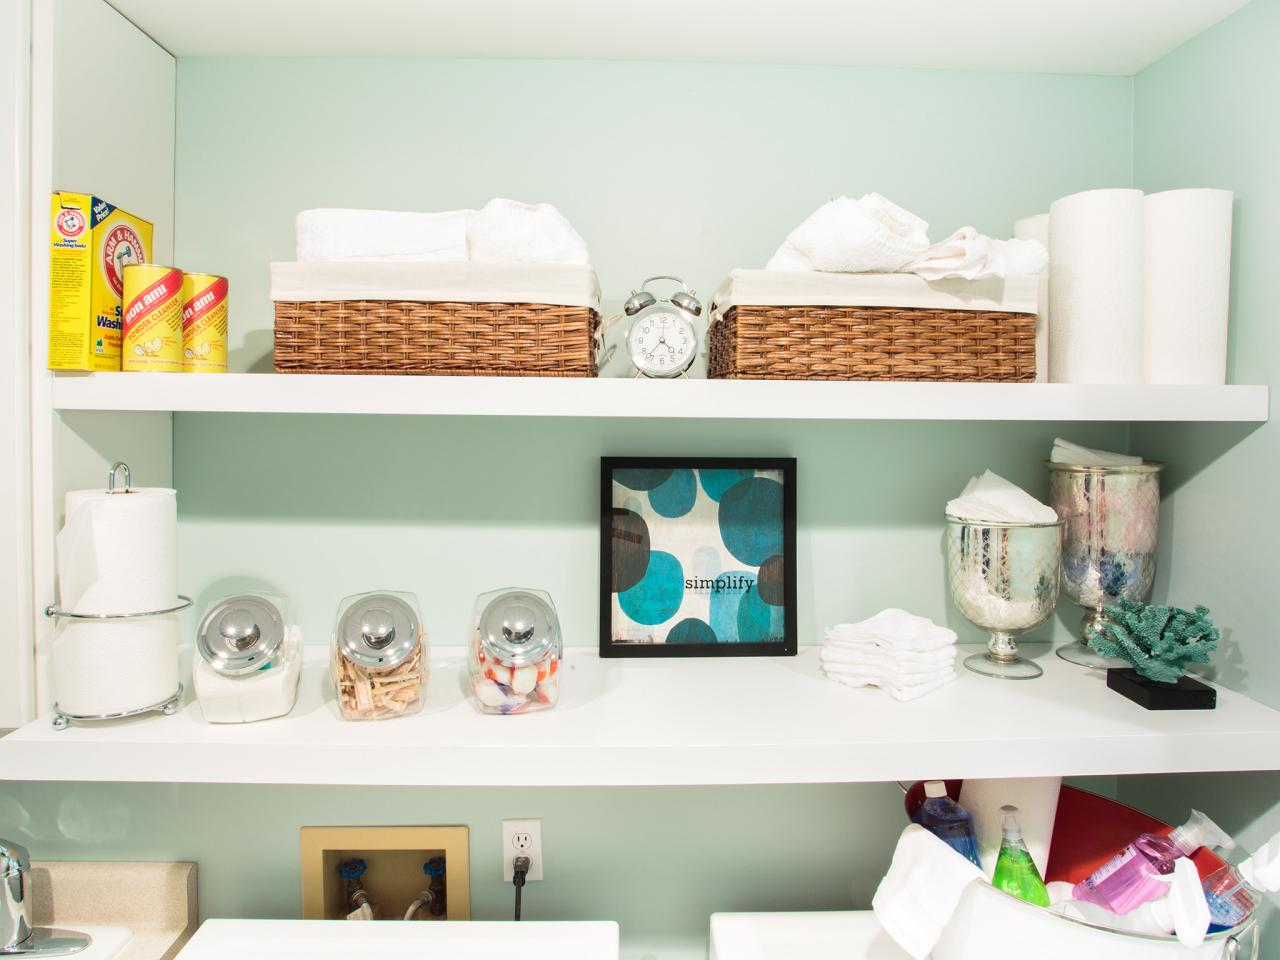 Wall Shelving Ideas For Small Spaces: 10 Clever Storage Ideas For Your Tiny Laundry Room